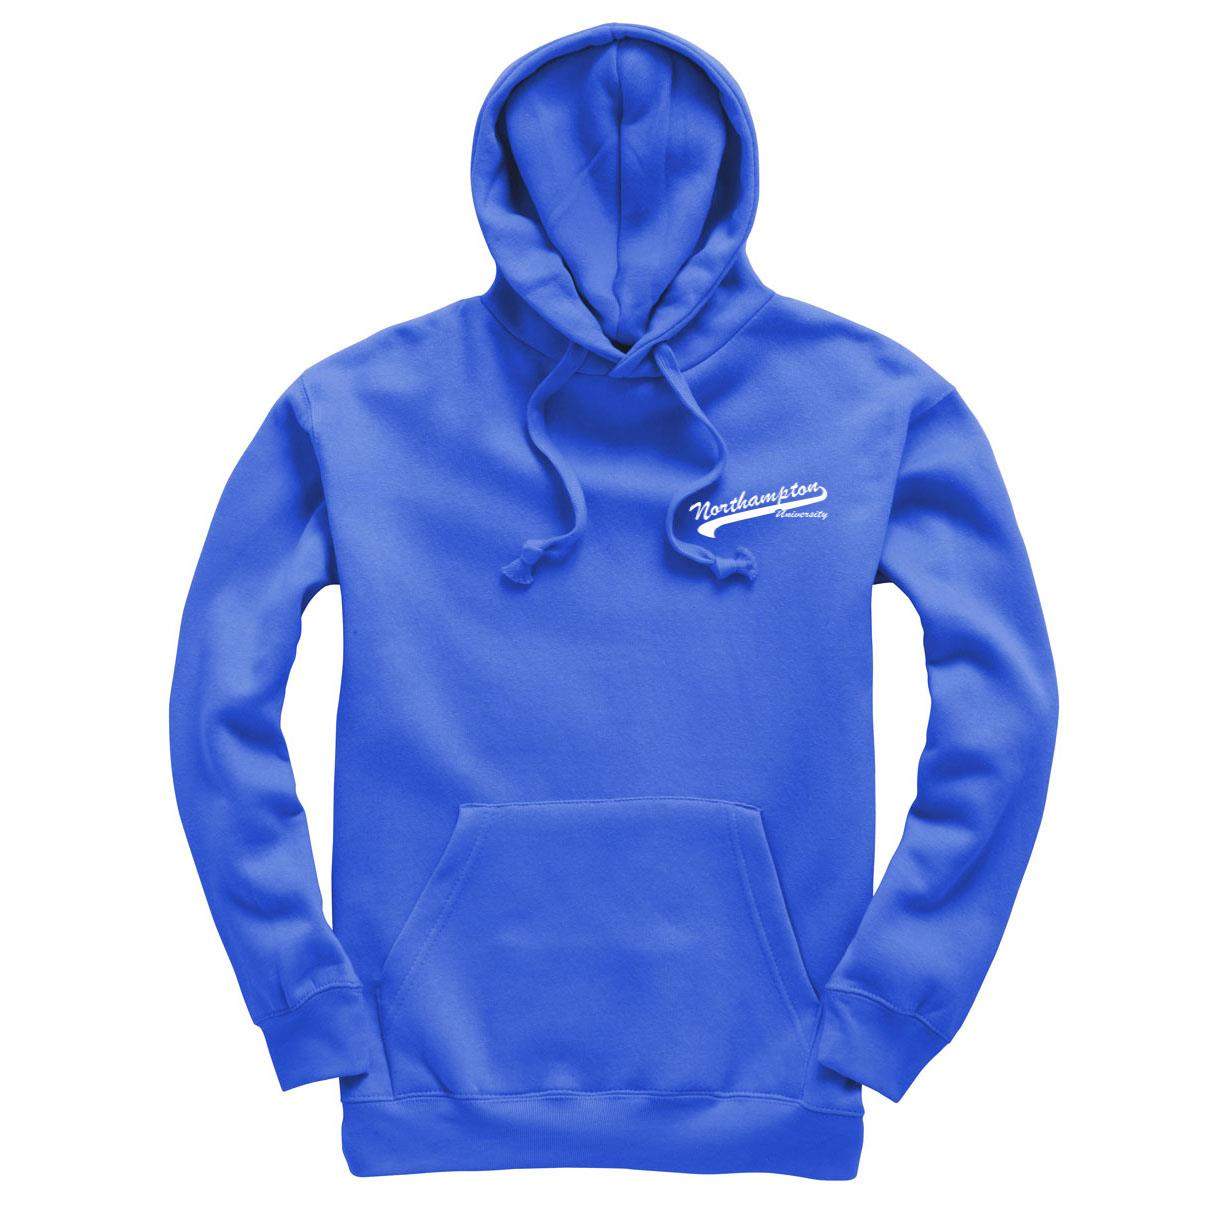 Heavyweight Hooded Top